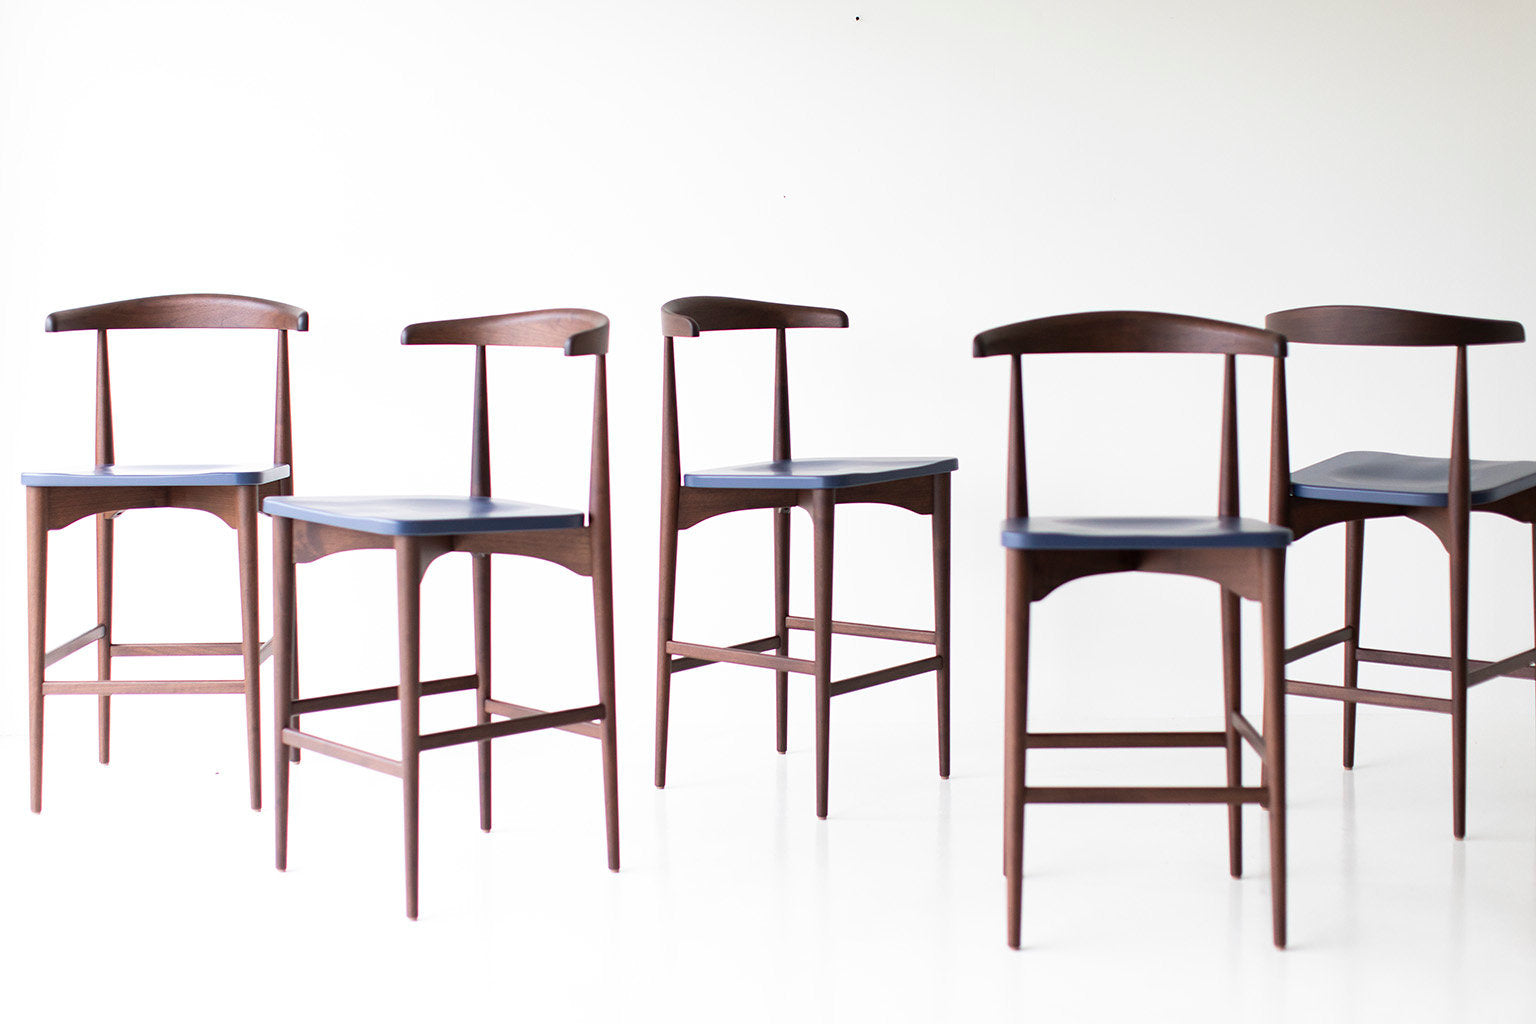 Lawrence-Peabody-Modern-Bar-Stools-Craft-Associates-11